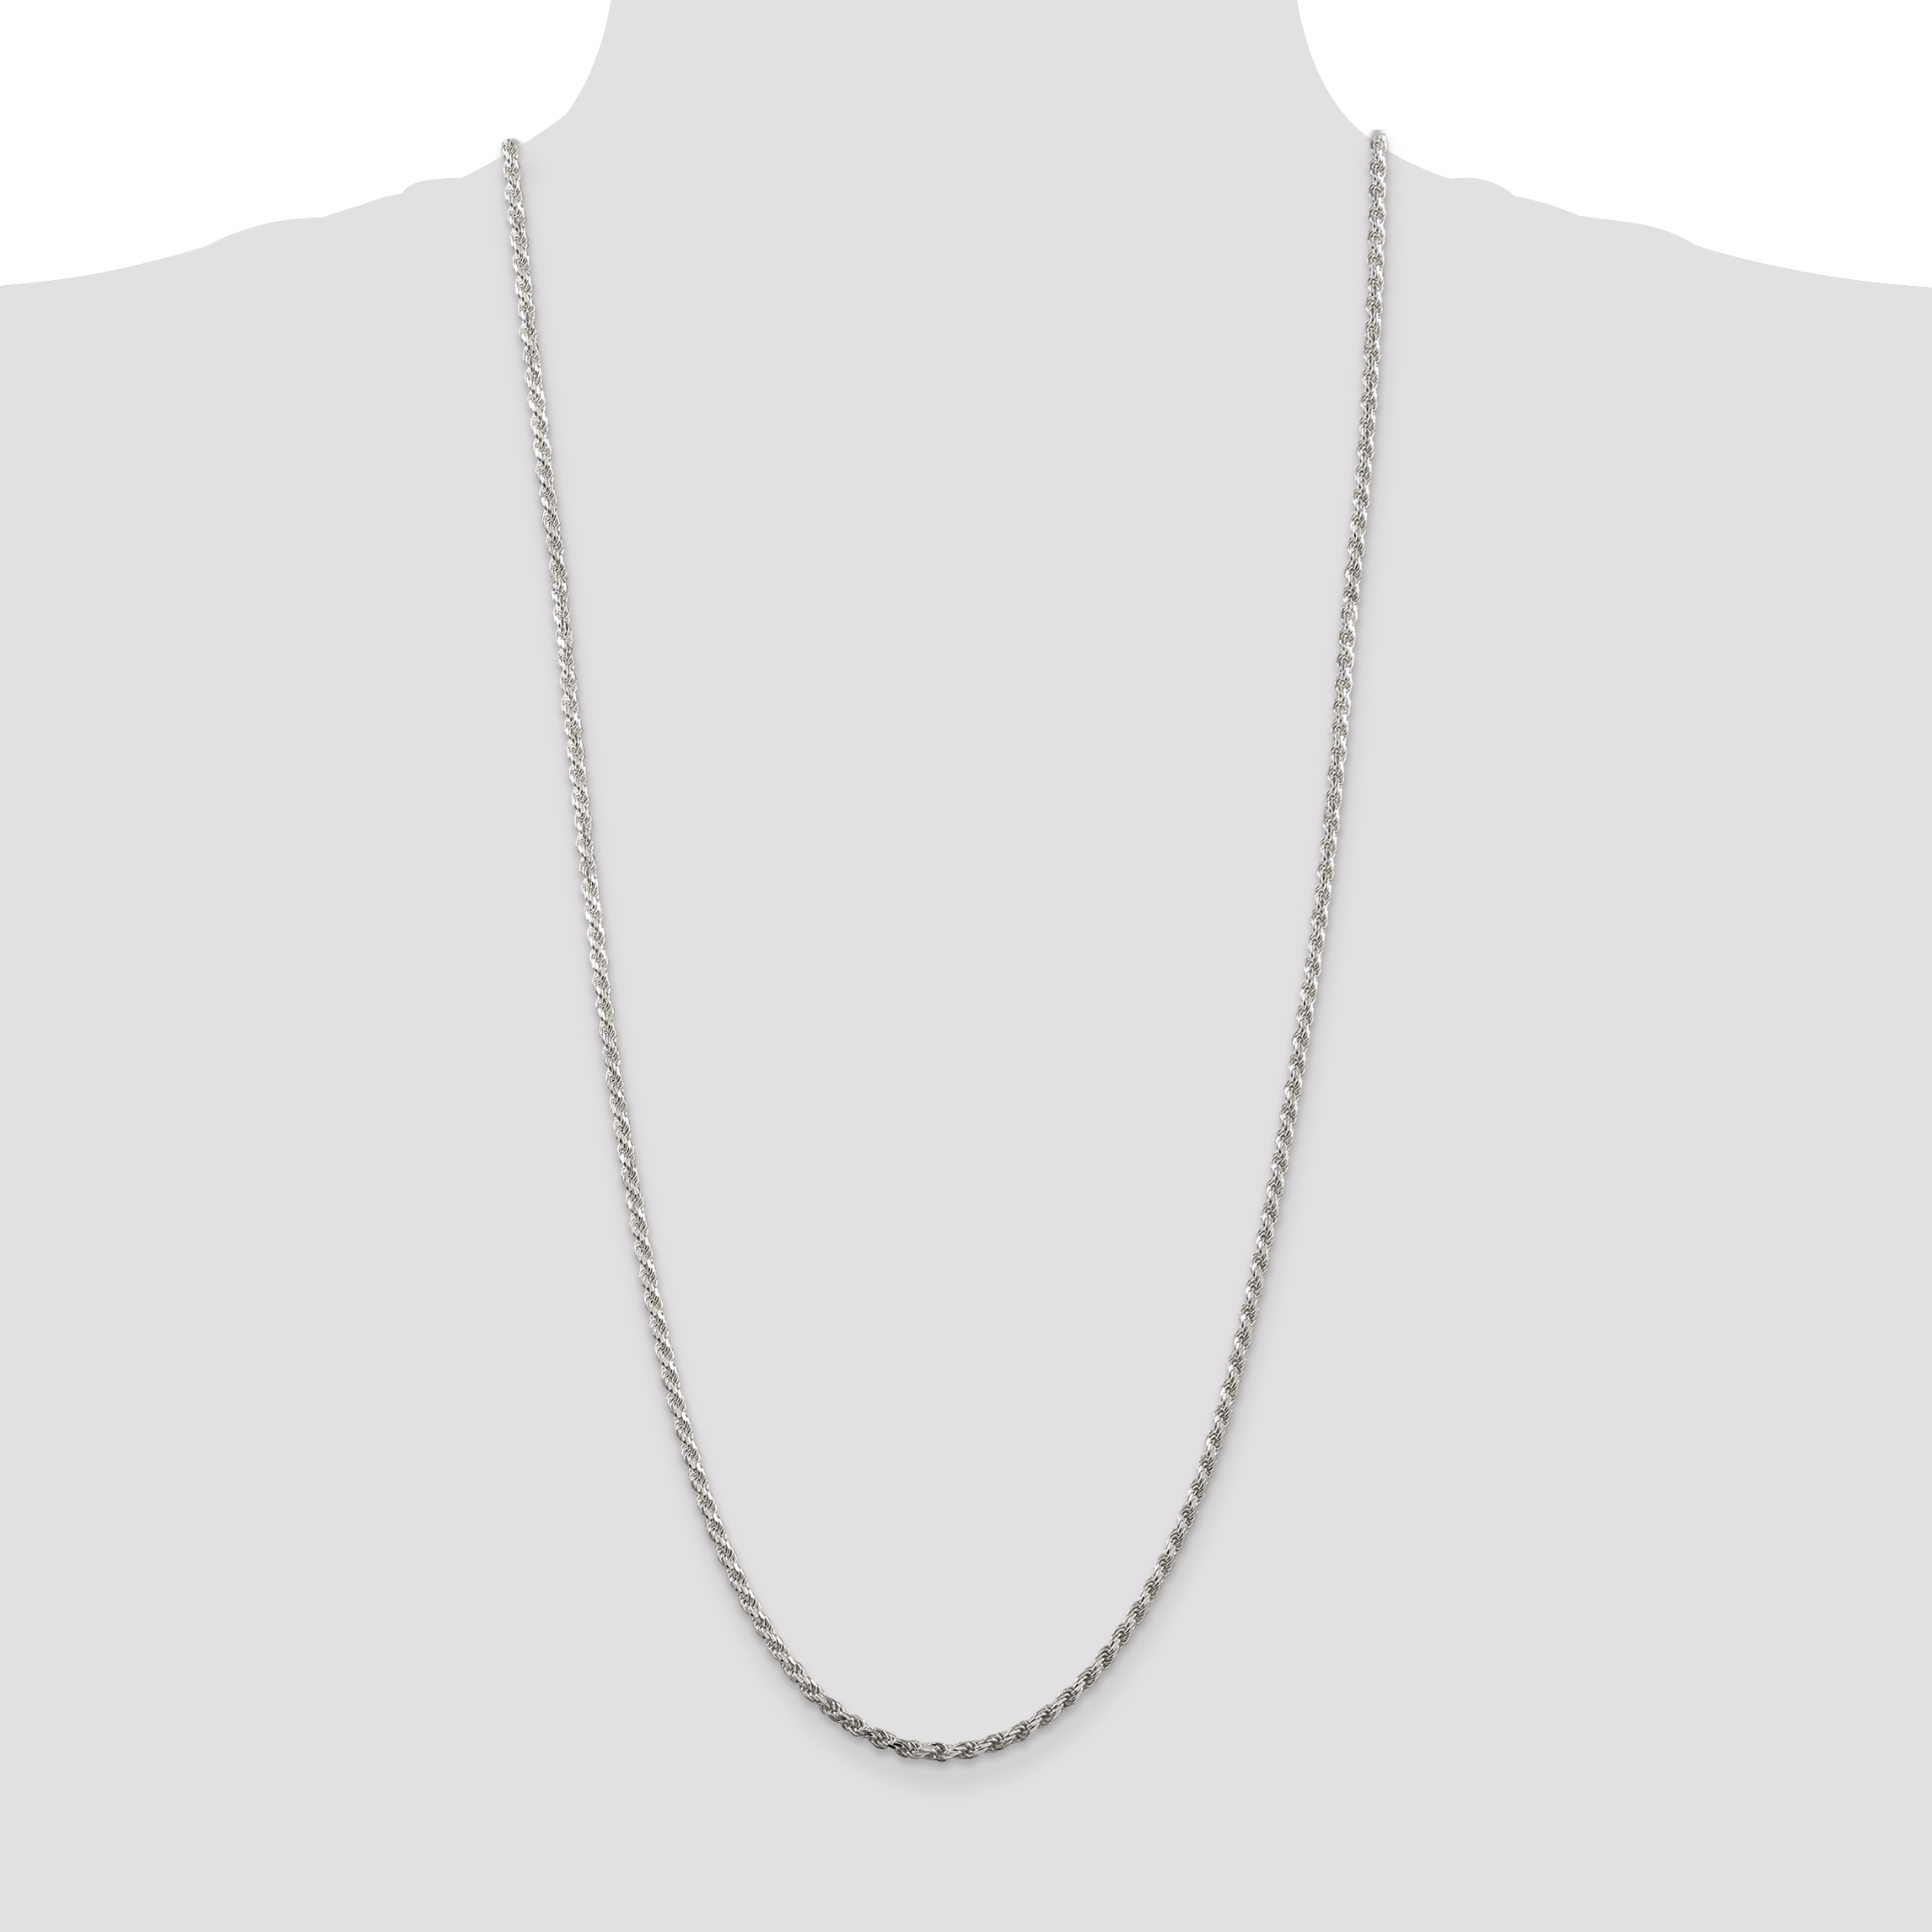 925 Sterling Silver 2.75mm Link Rope Necklace Chain Pendant Charm Fine Jewelry Gifts For Women For Her - image 4 de 5